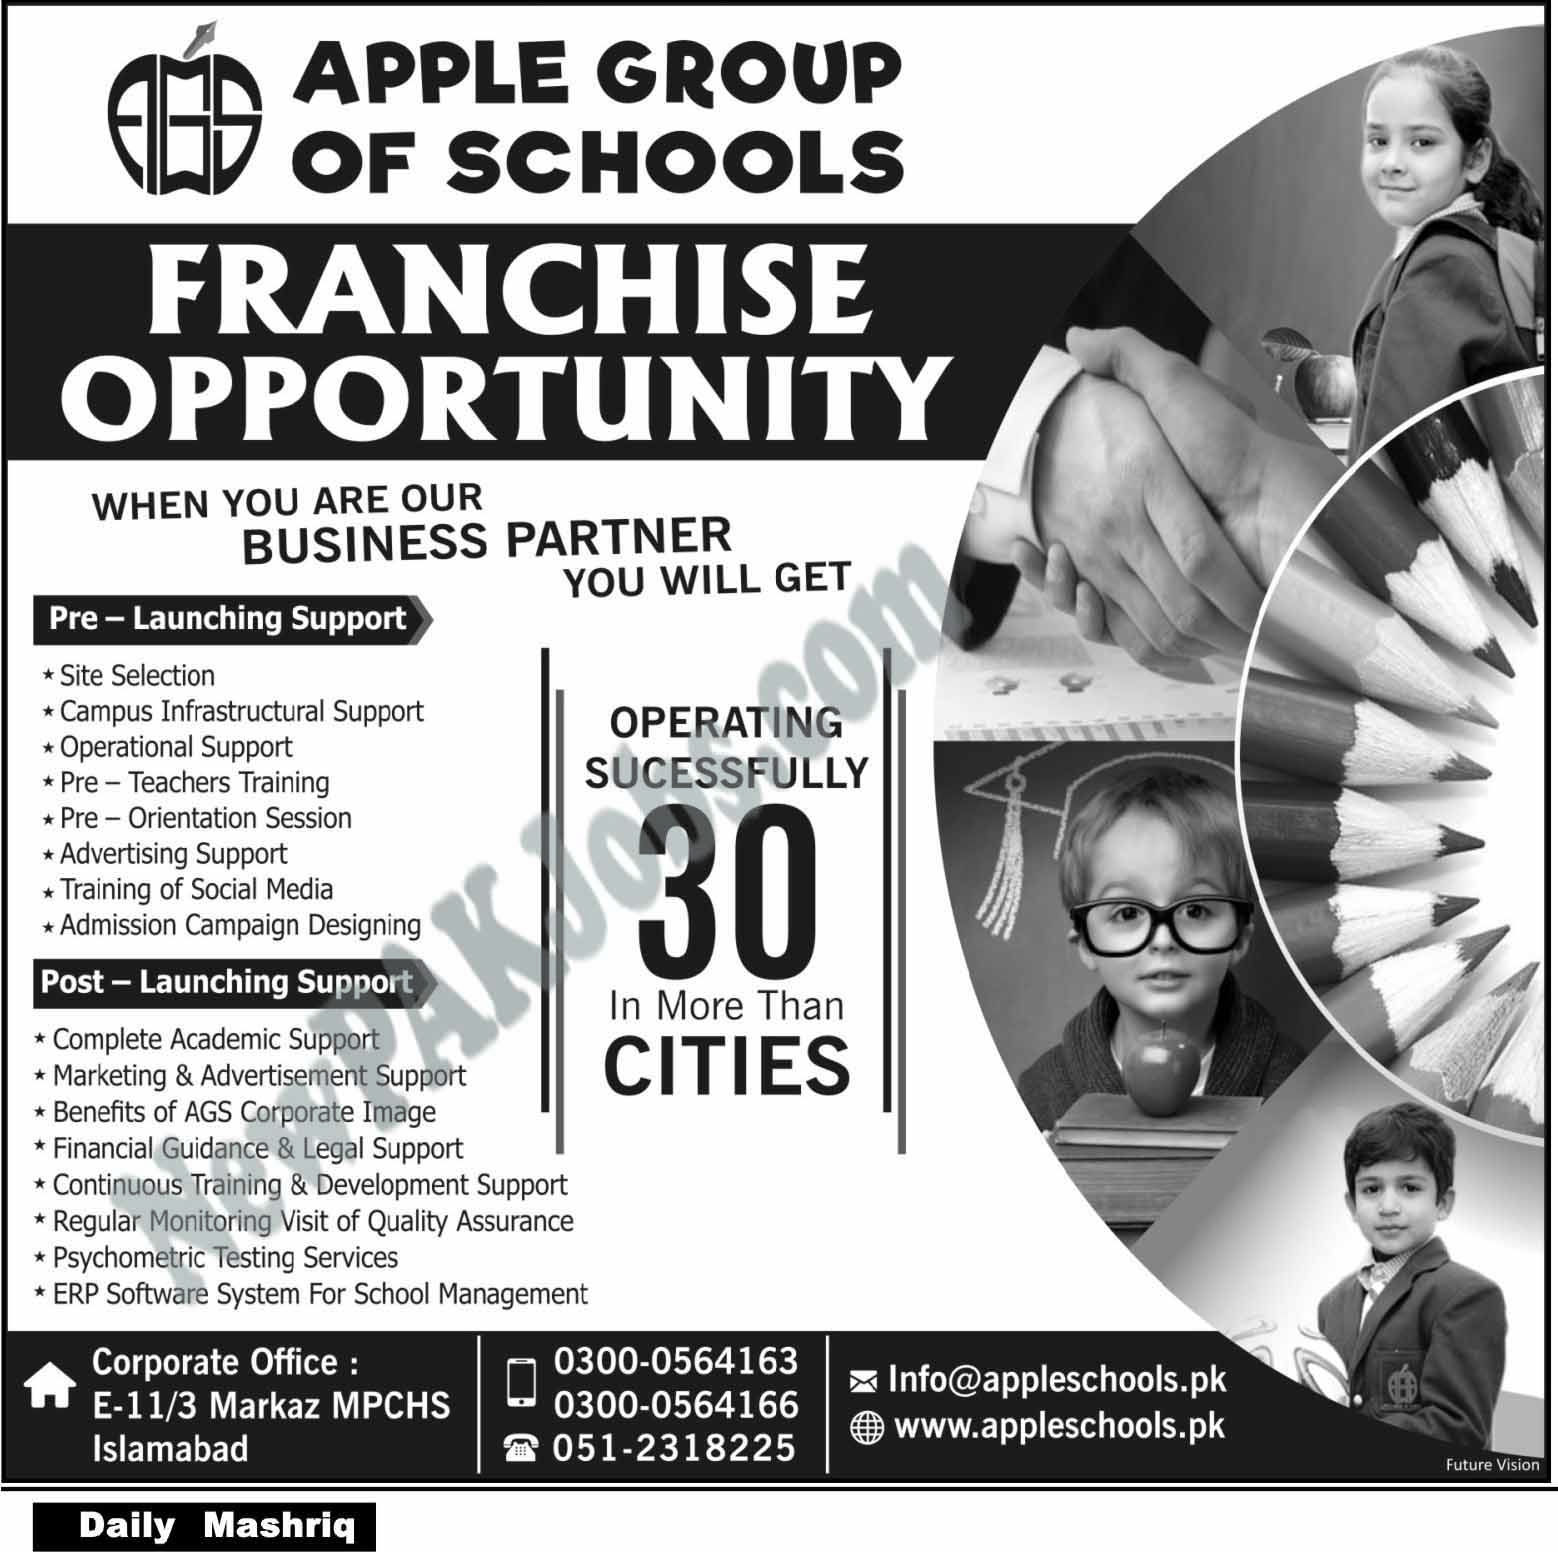 Business Opportunities with Apple Group of Schools, Franchise Opportunities